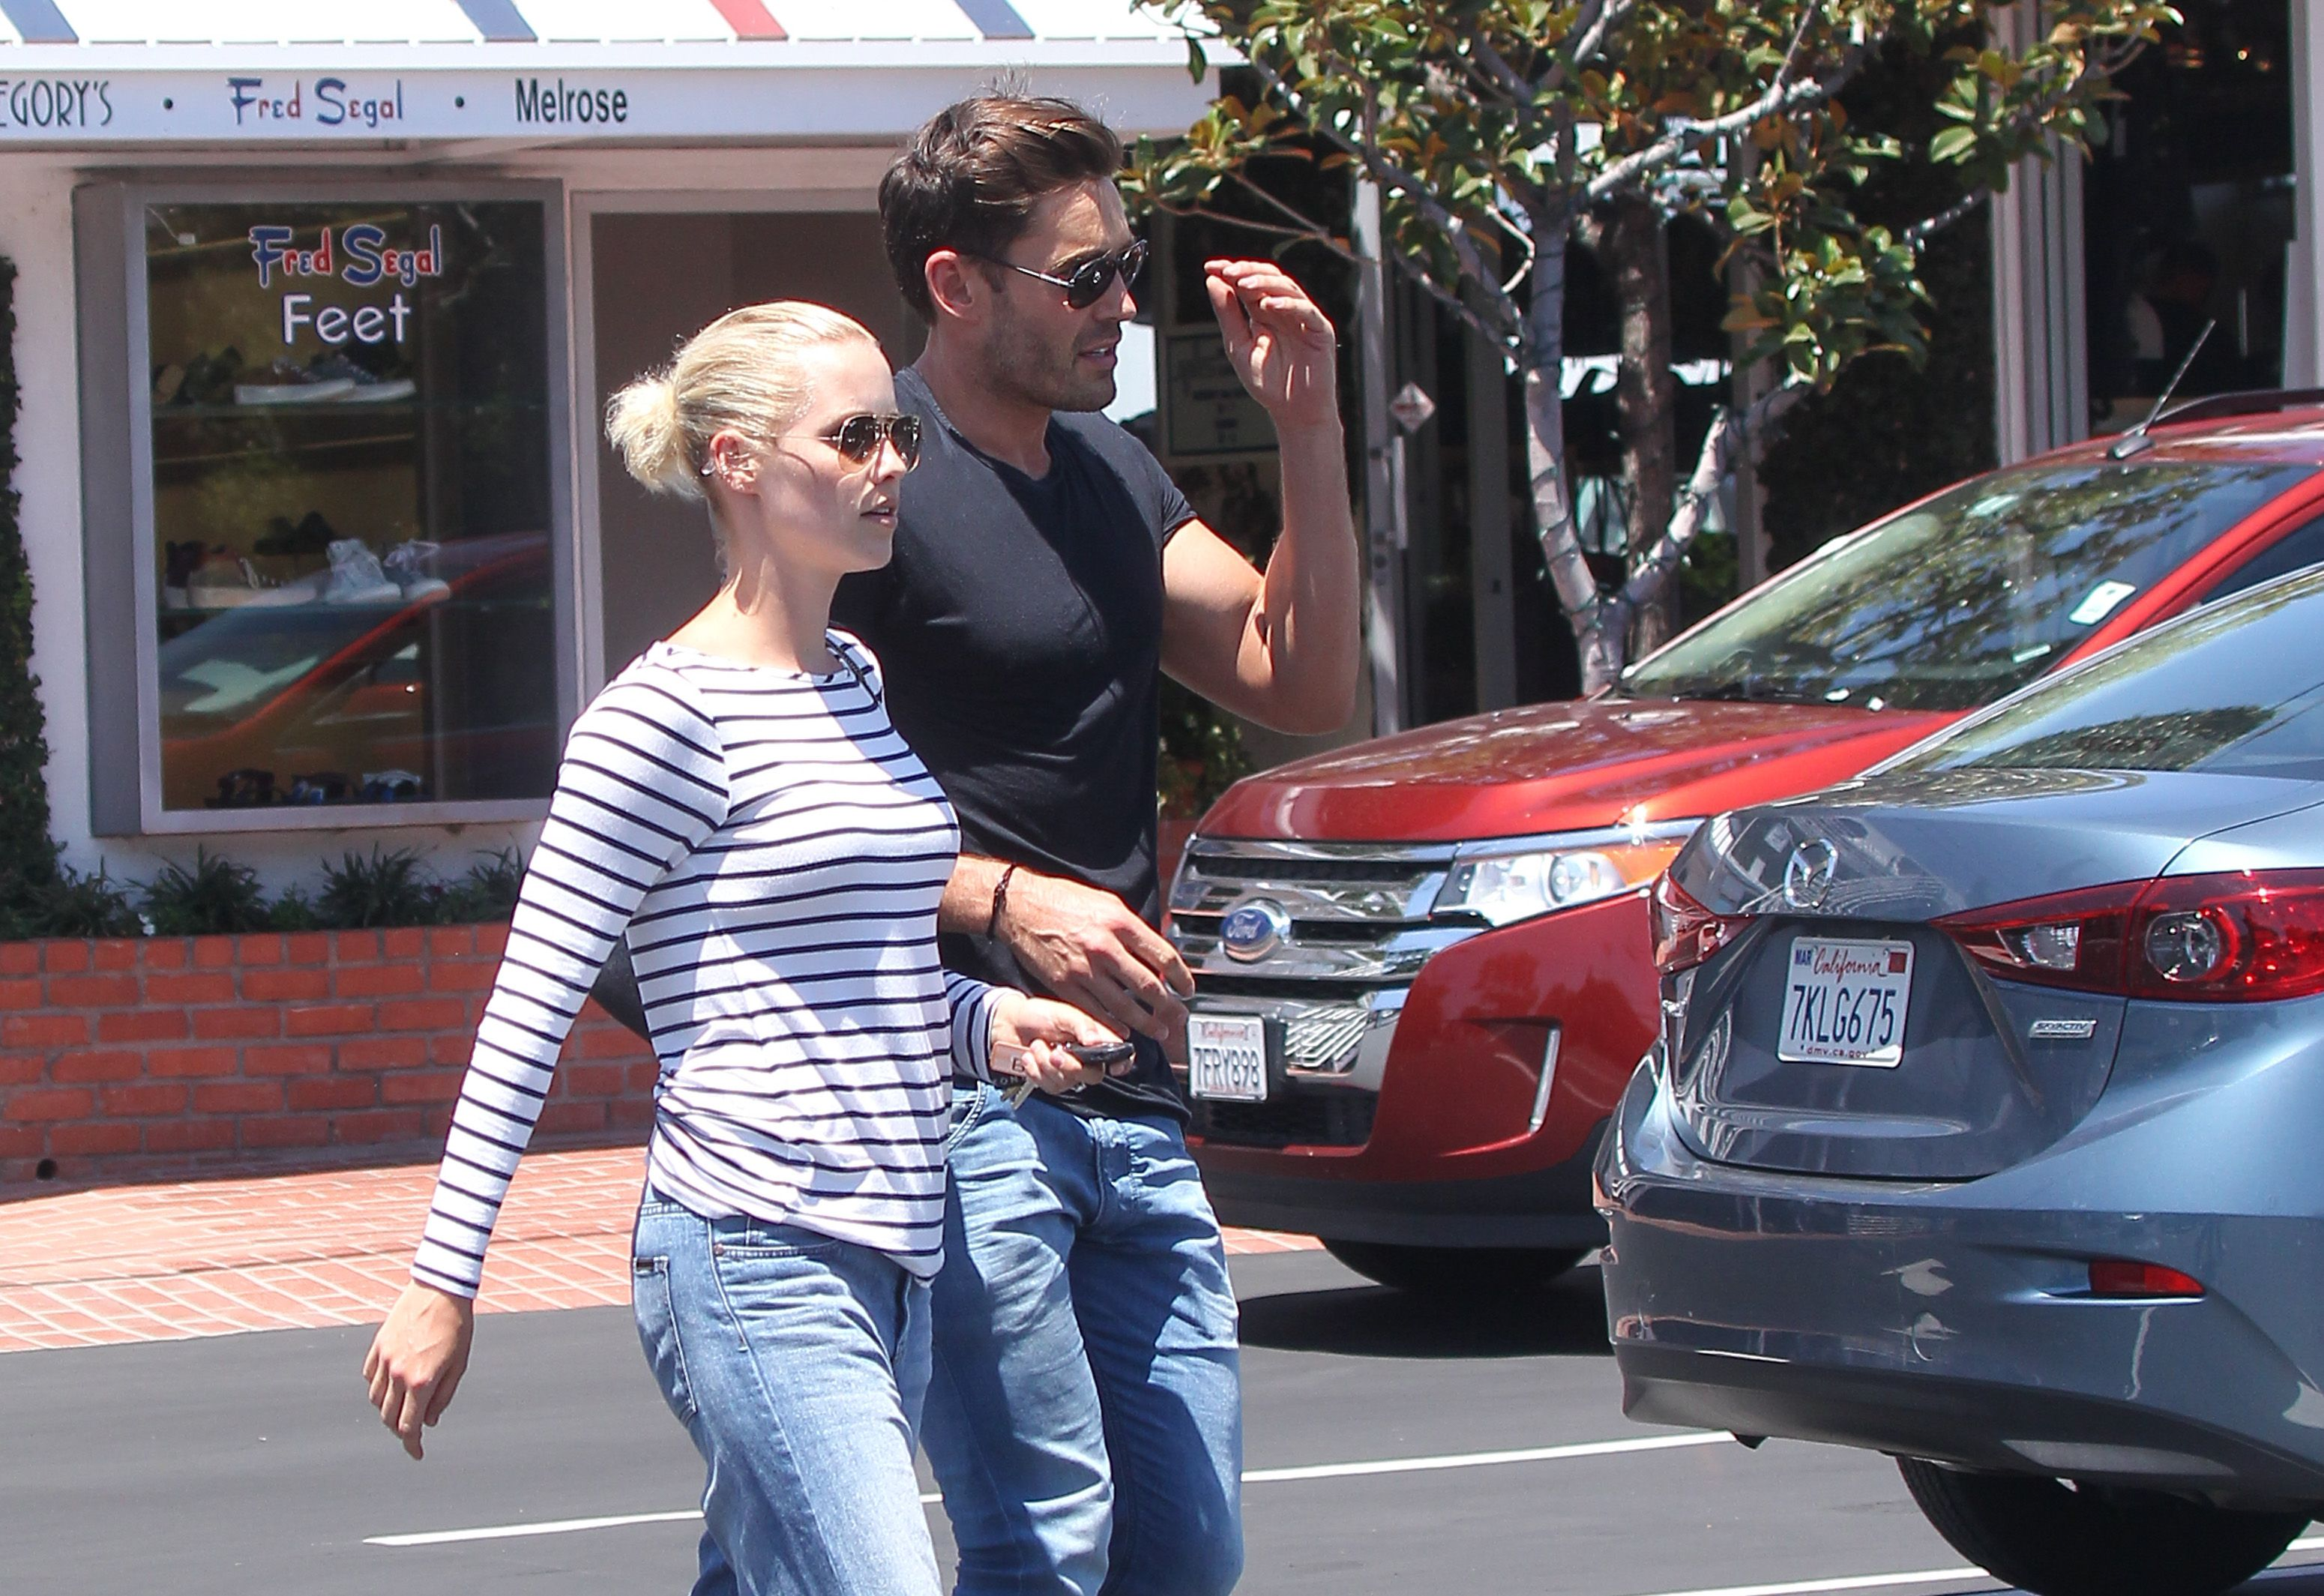 Claire Holt and Matt Kaplan are spotted on July 14, 2015 in Los Angeles, California.   Source: Getty Images